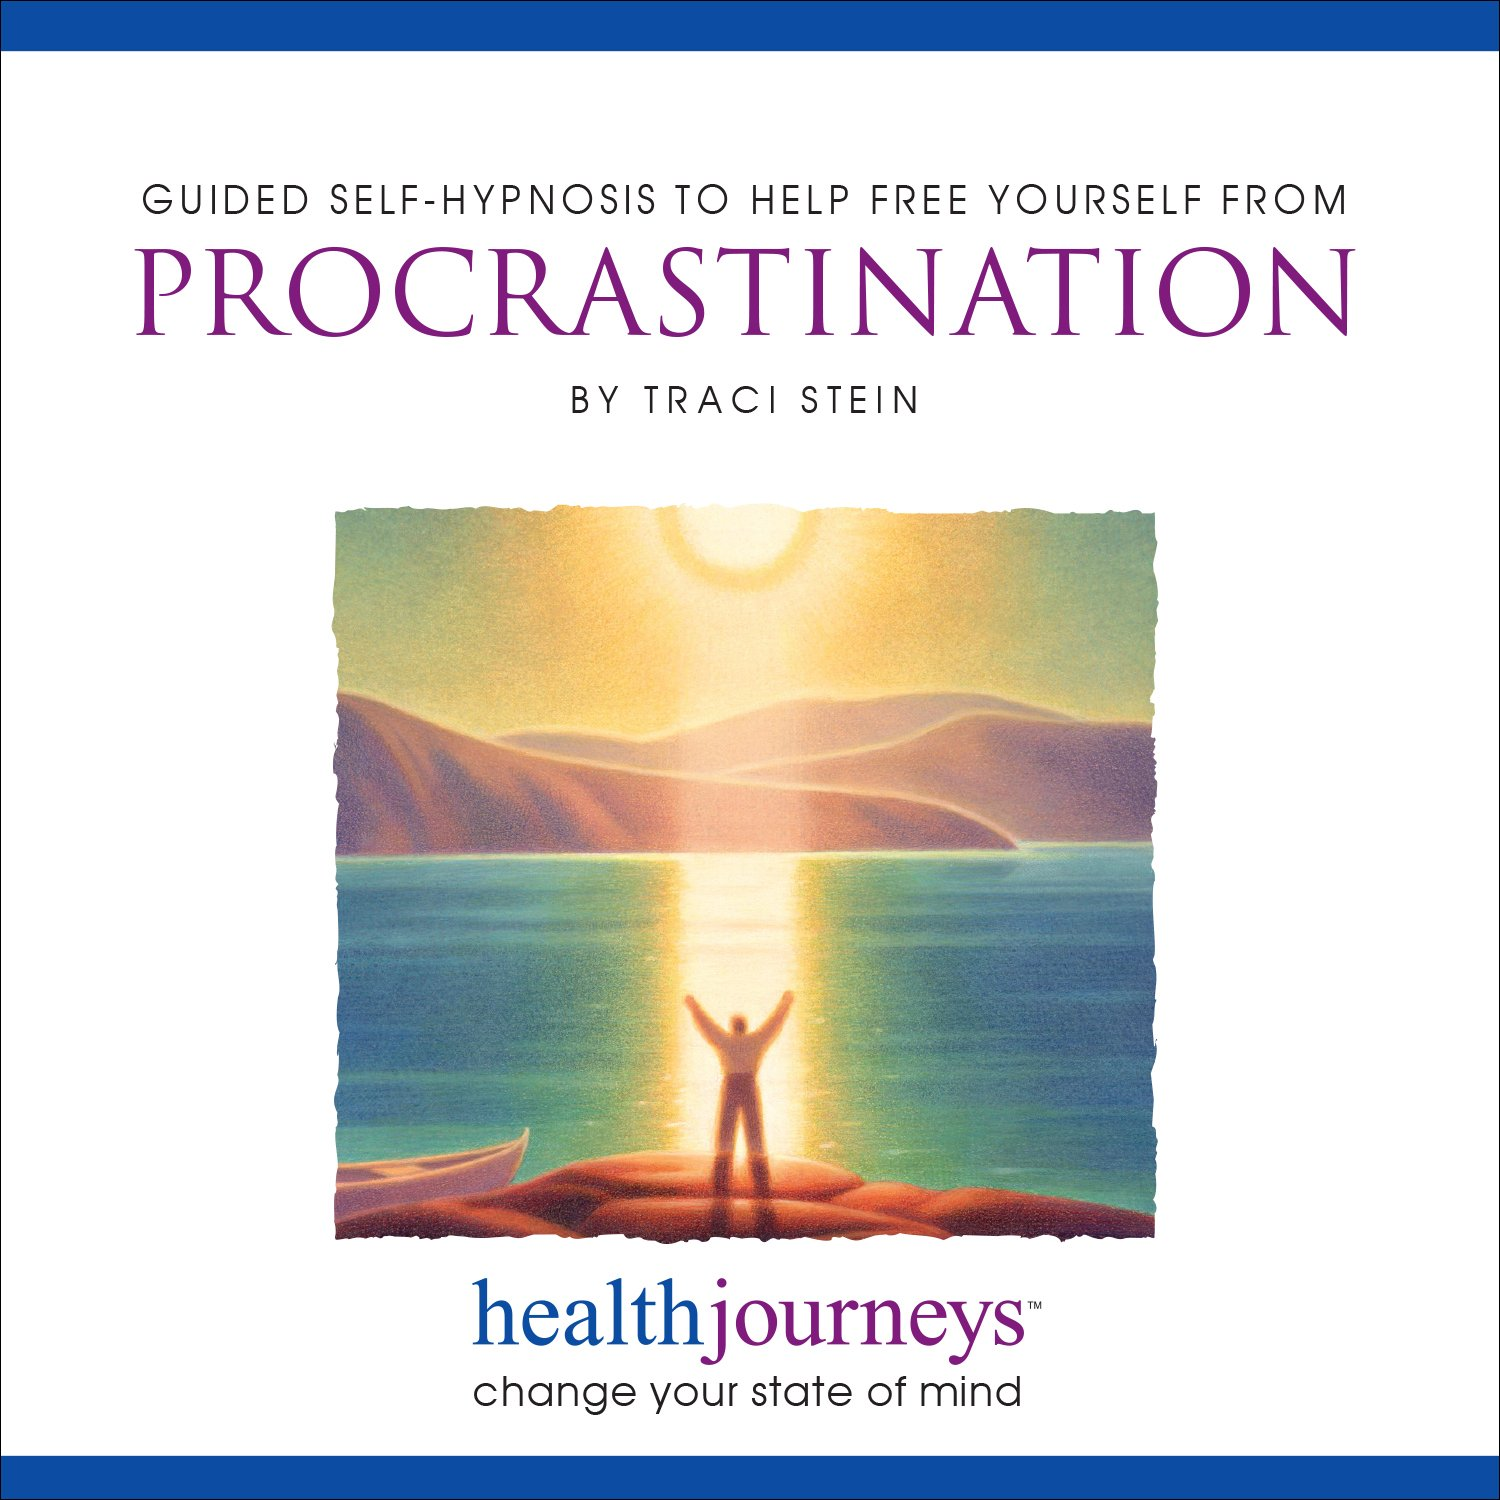 Meditations to Free Yourself from Procrastination, Tools and Techniques for Overcoming Procrastination, Increase Feelings  of Confidence, Sharpen Focus and Concentration and Form Healthy, Well-Timed Work Habits with Healing Words and Soothing Music by Tra by Health Journeys